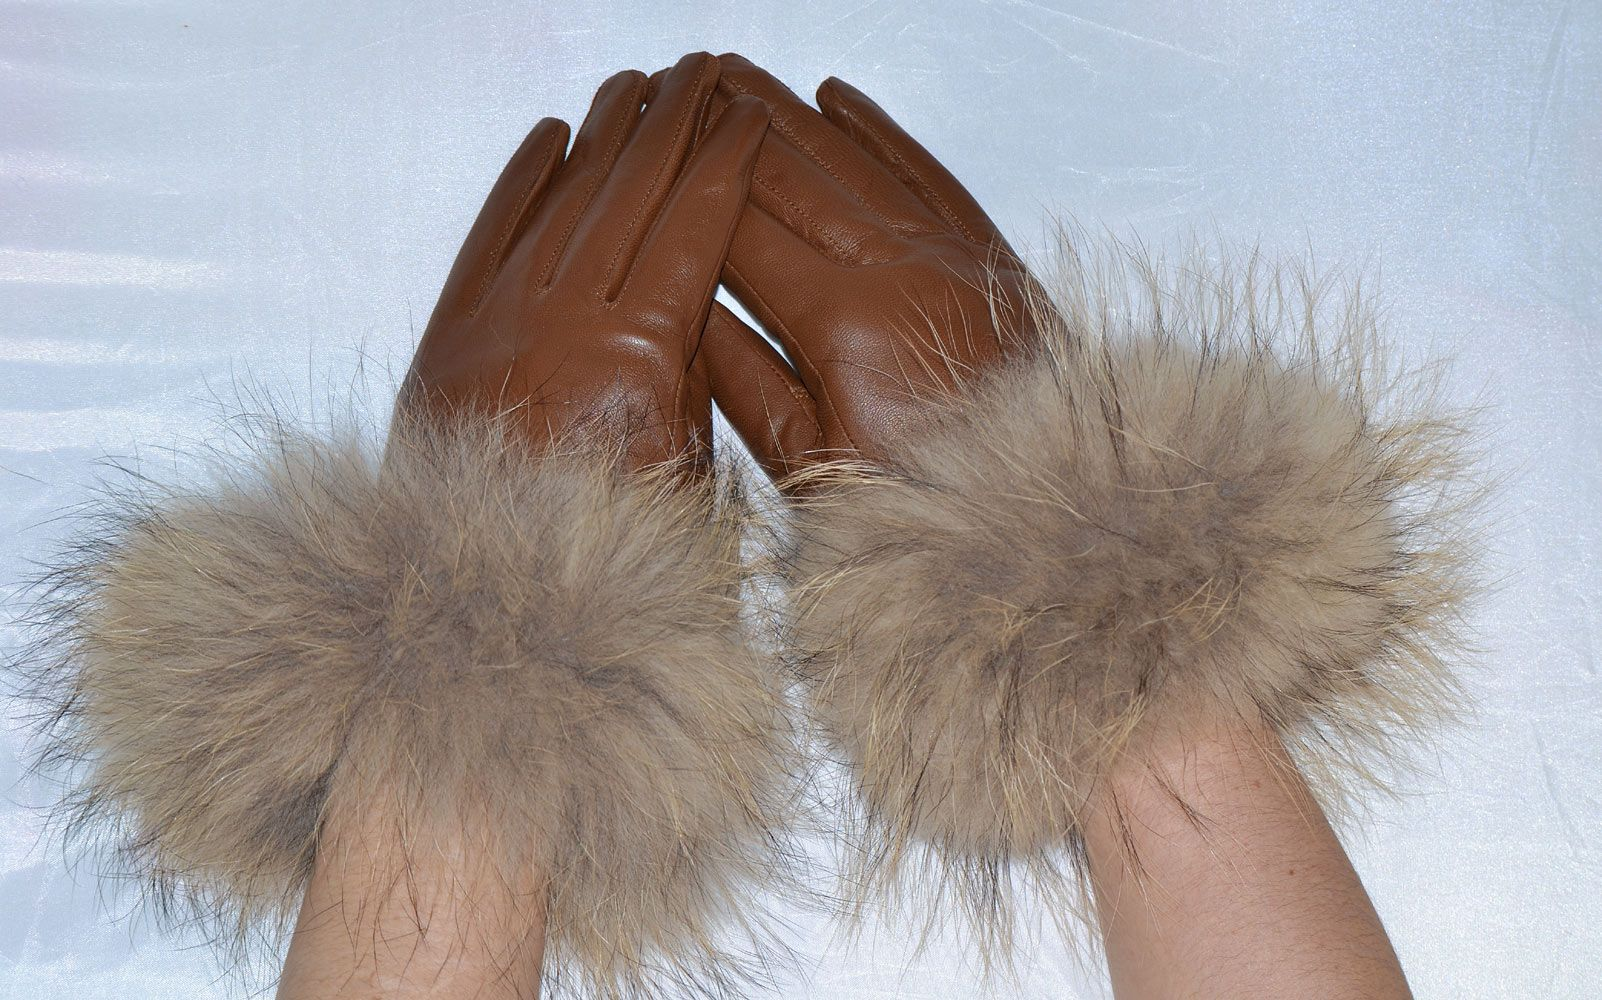 Black or brown leather gloves - Black Or Tan Leather Gloves With Raccoon Fur Trim